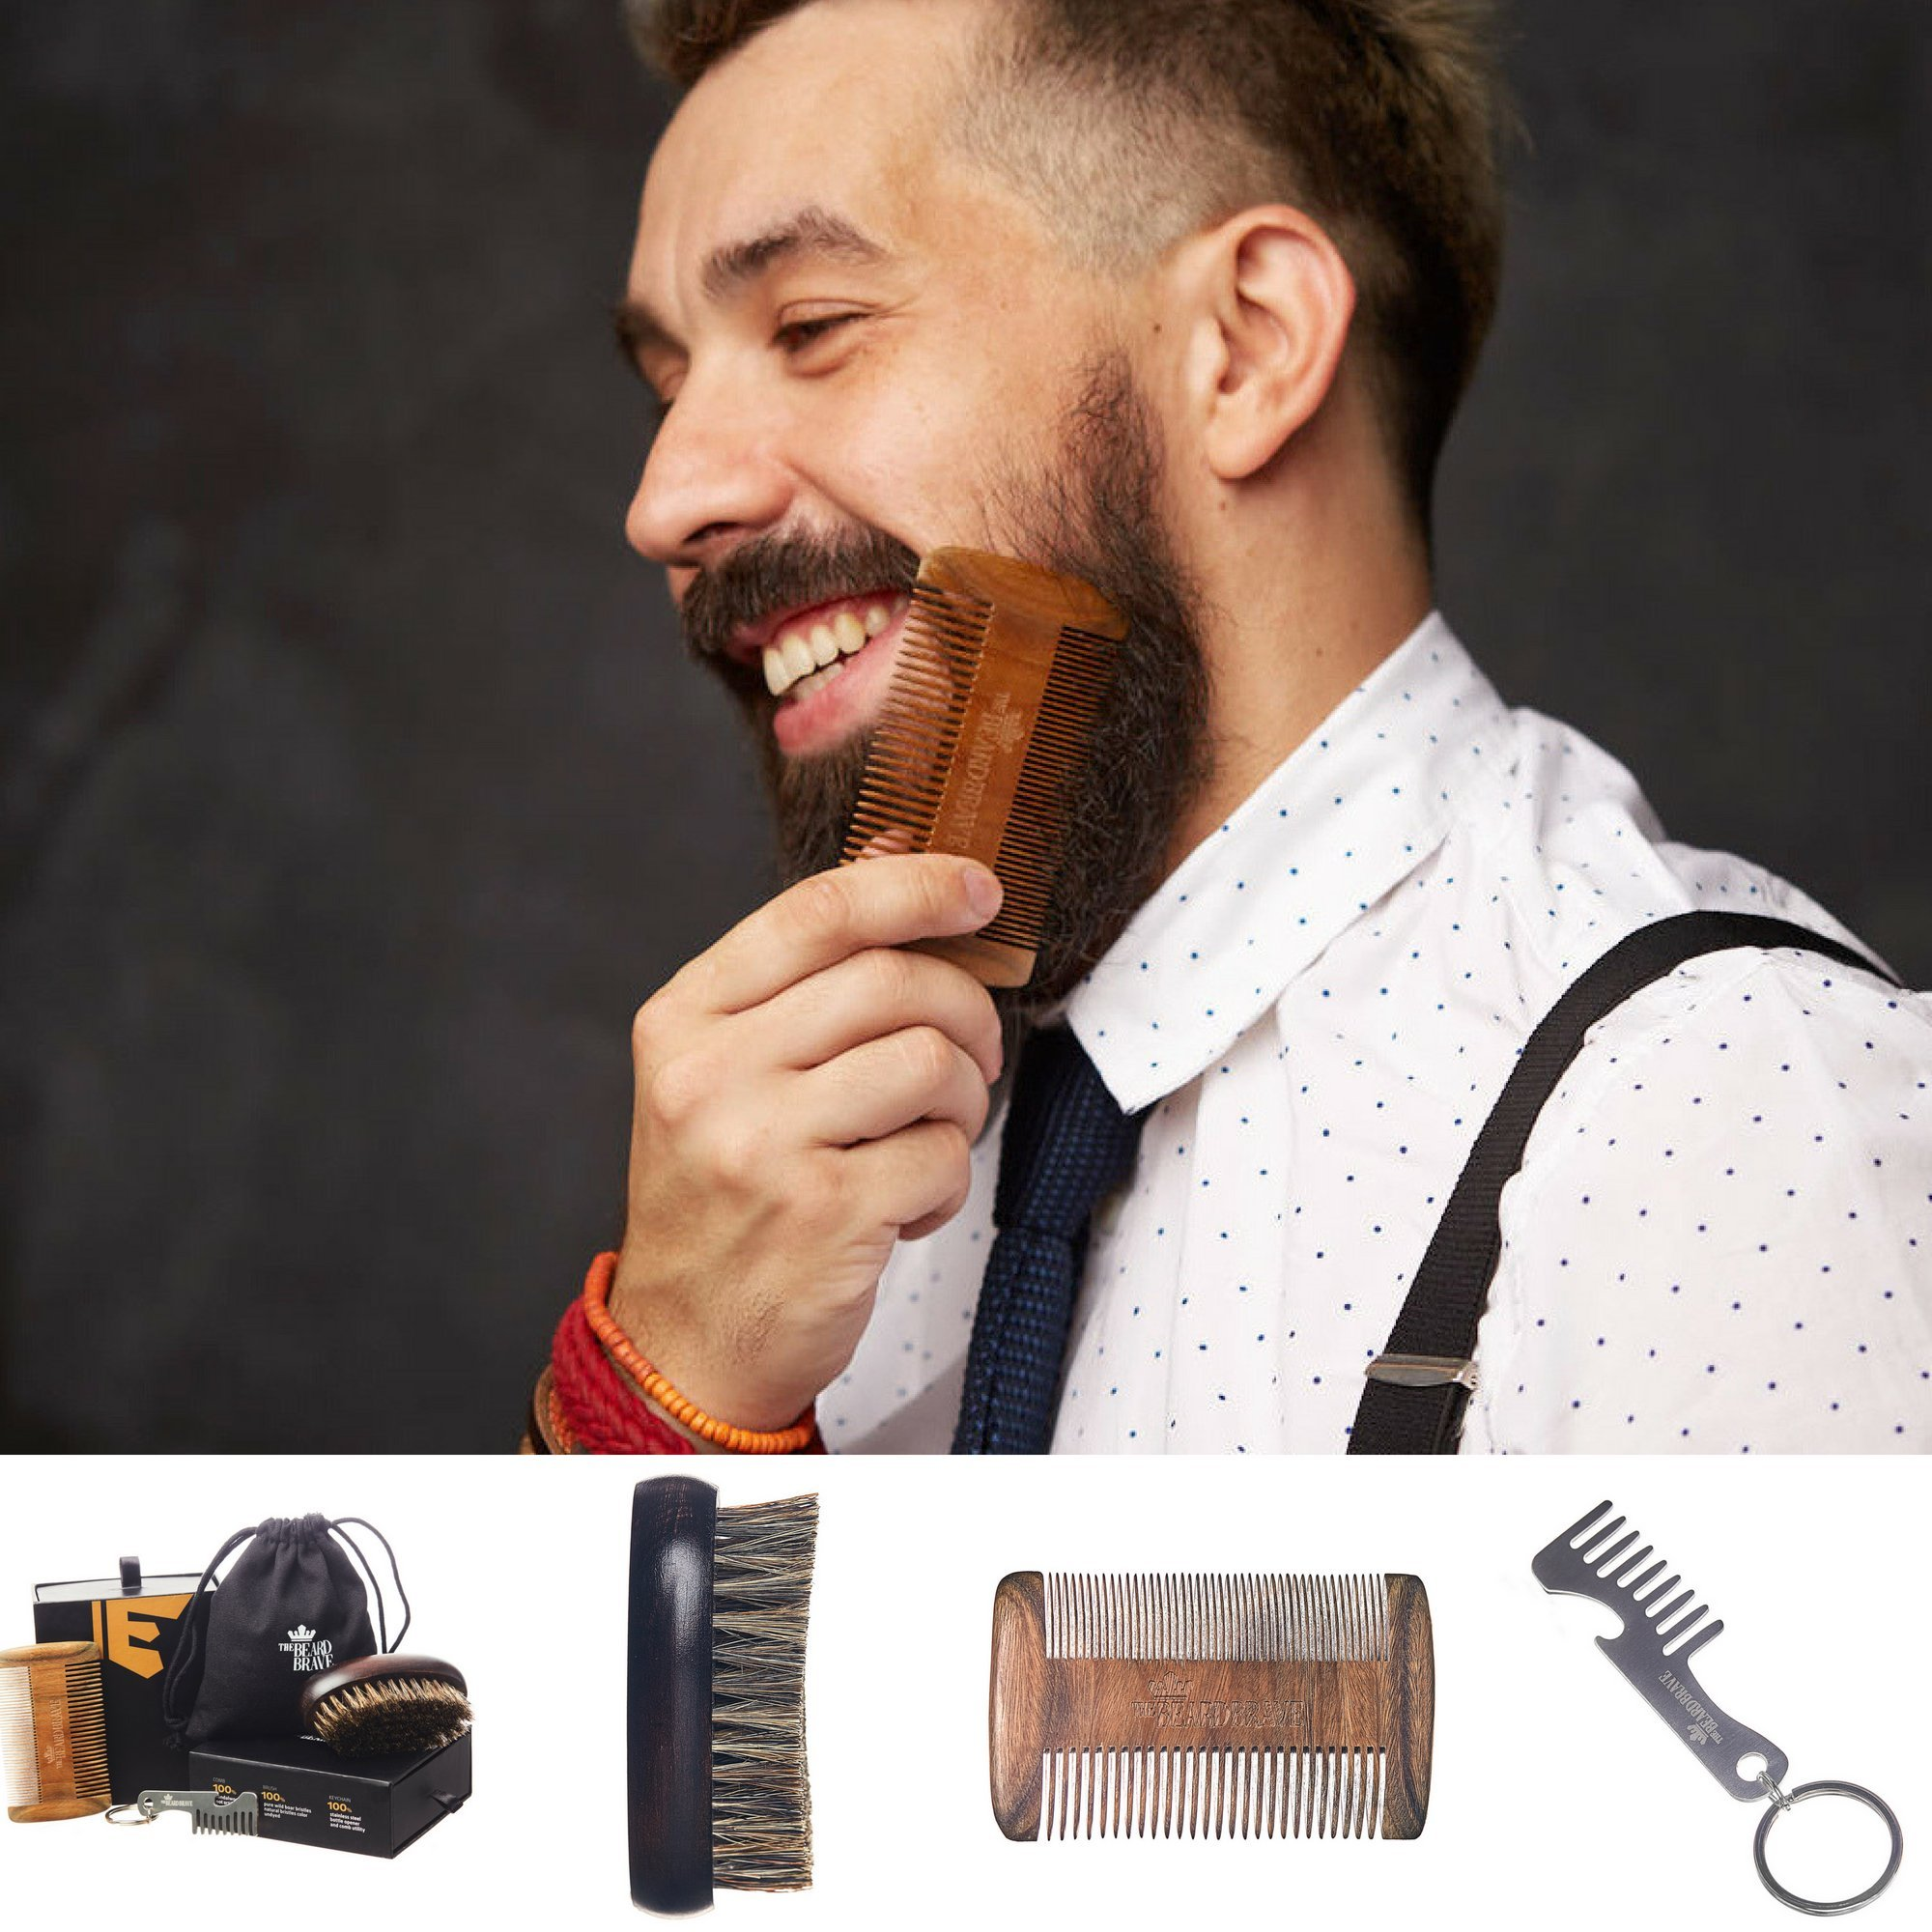 Beard Brush and Beard Comb Set - Genuine Sandalwood and Boar Bristle Beard Grooming Kit + 3-IN-1 Utility Mustache Comb Care by The Beard Brave